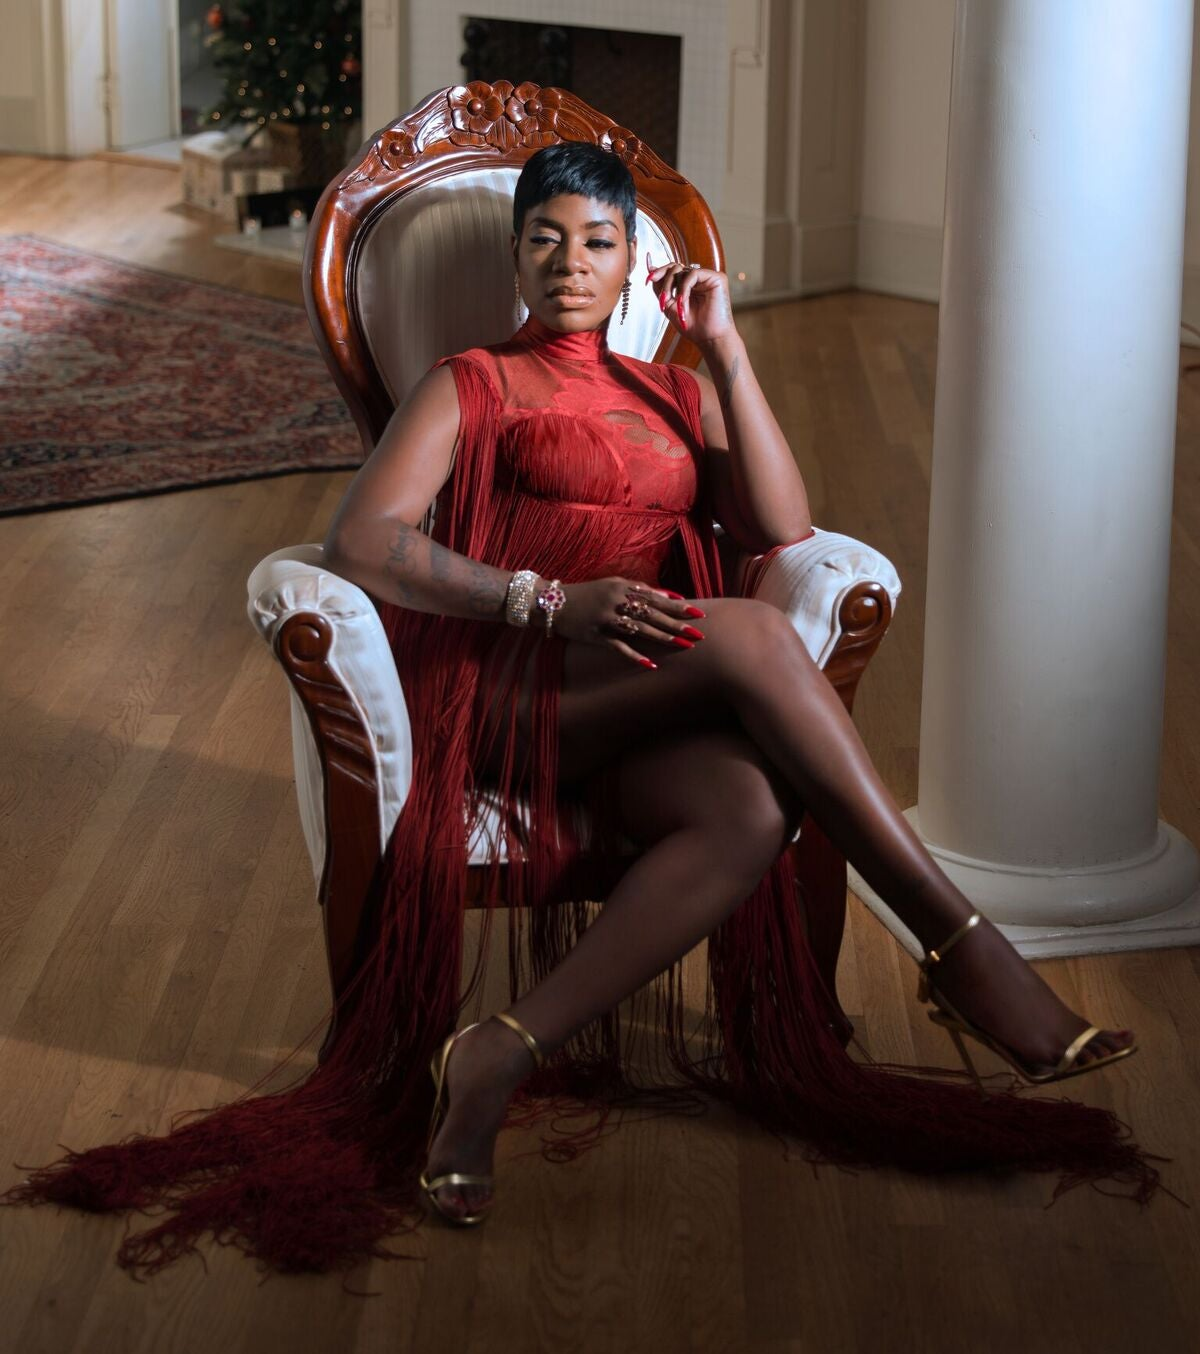 Fantasia On Marriage: 'I Had To Clean My Slate First, Then I Met My King'